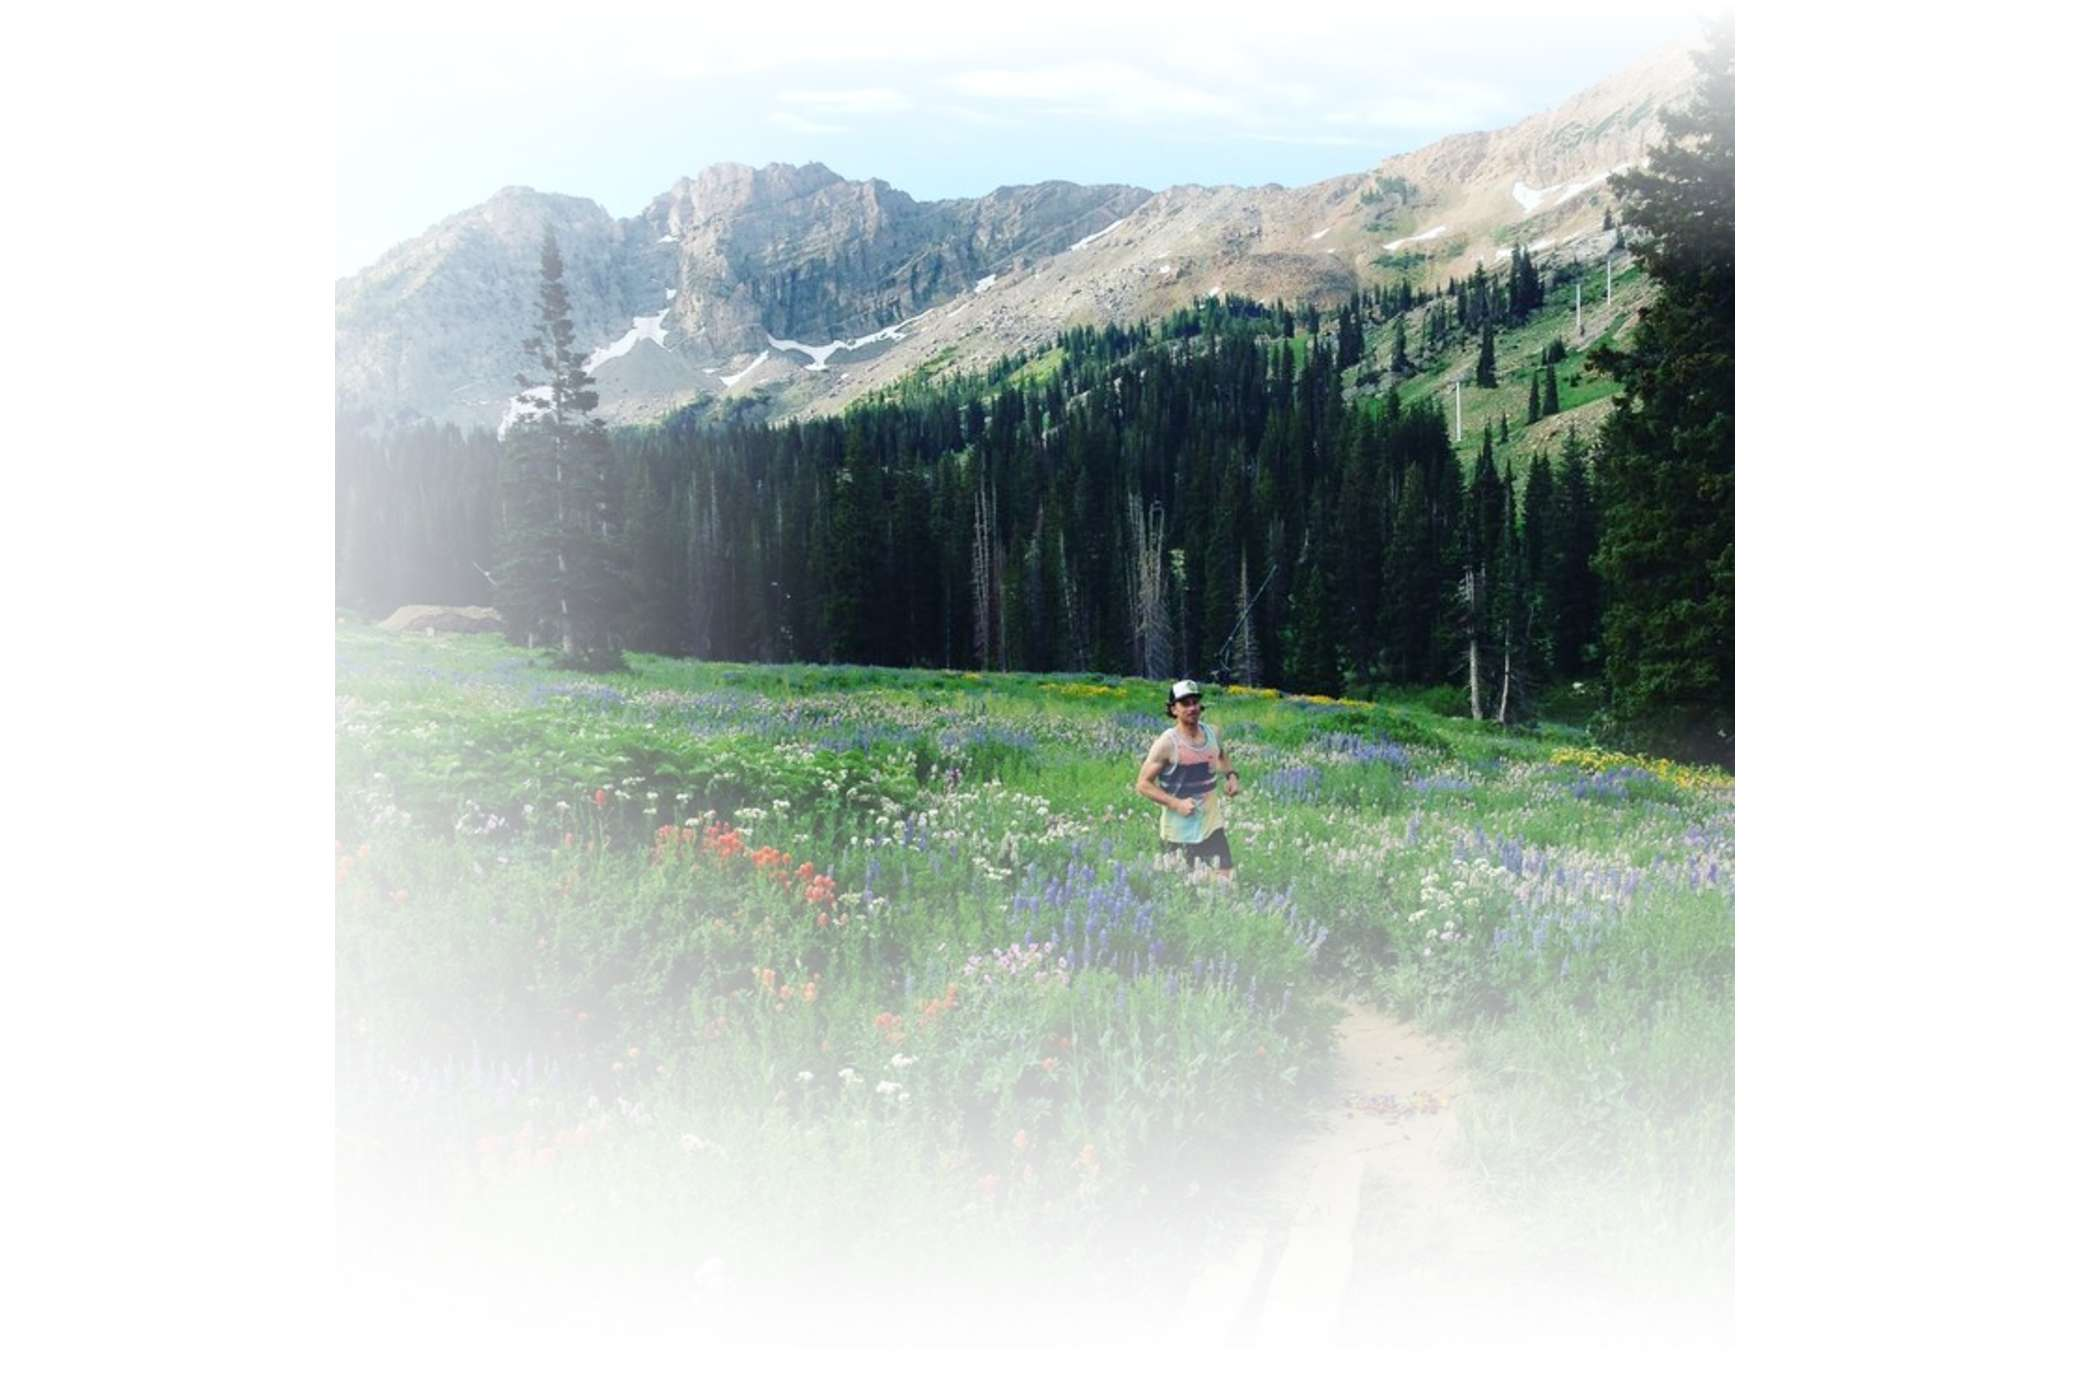 A runner in the wildflowers on a sunny summer day at Alta Ski Area